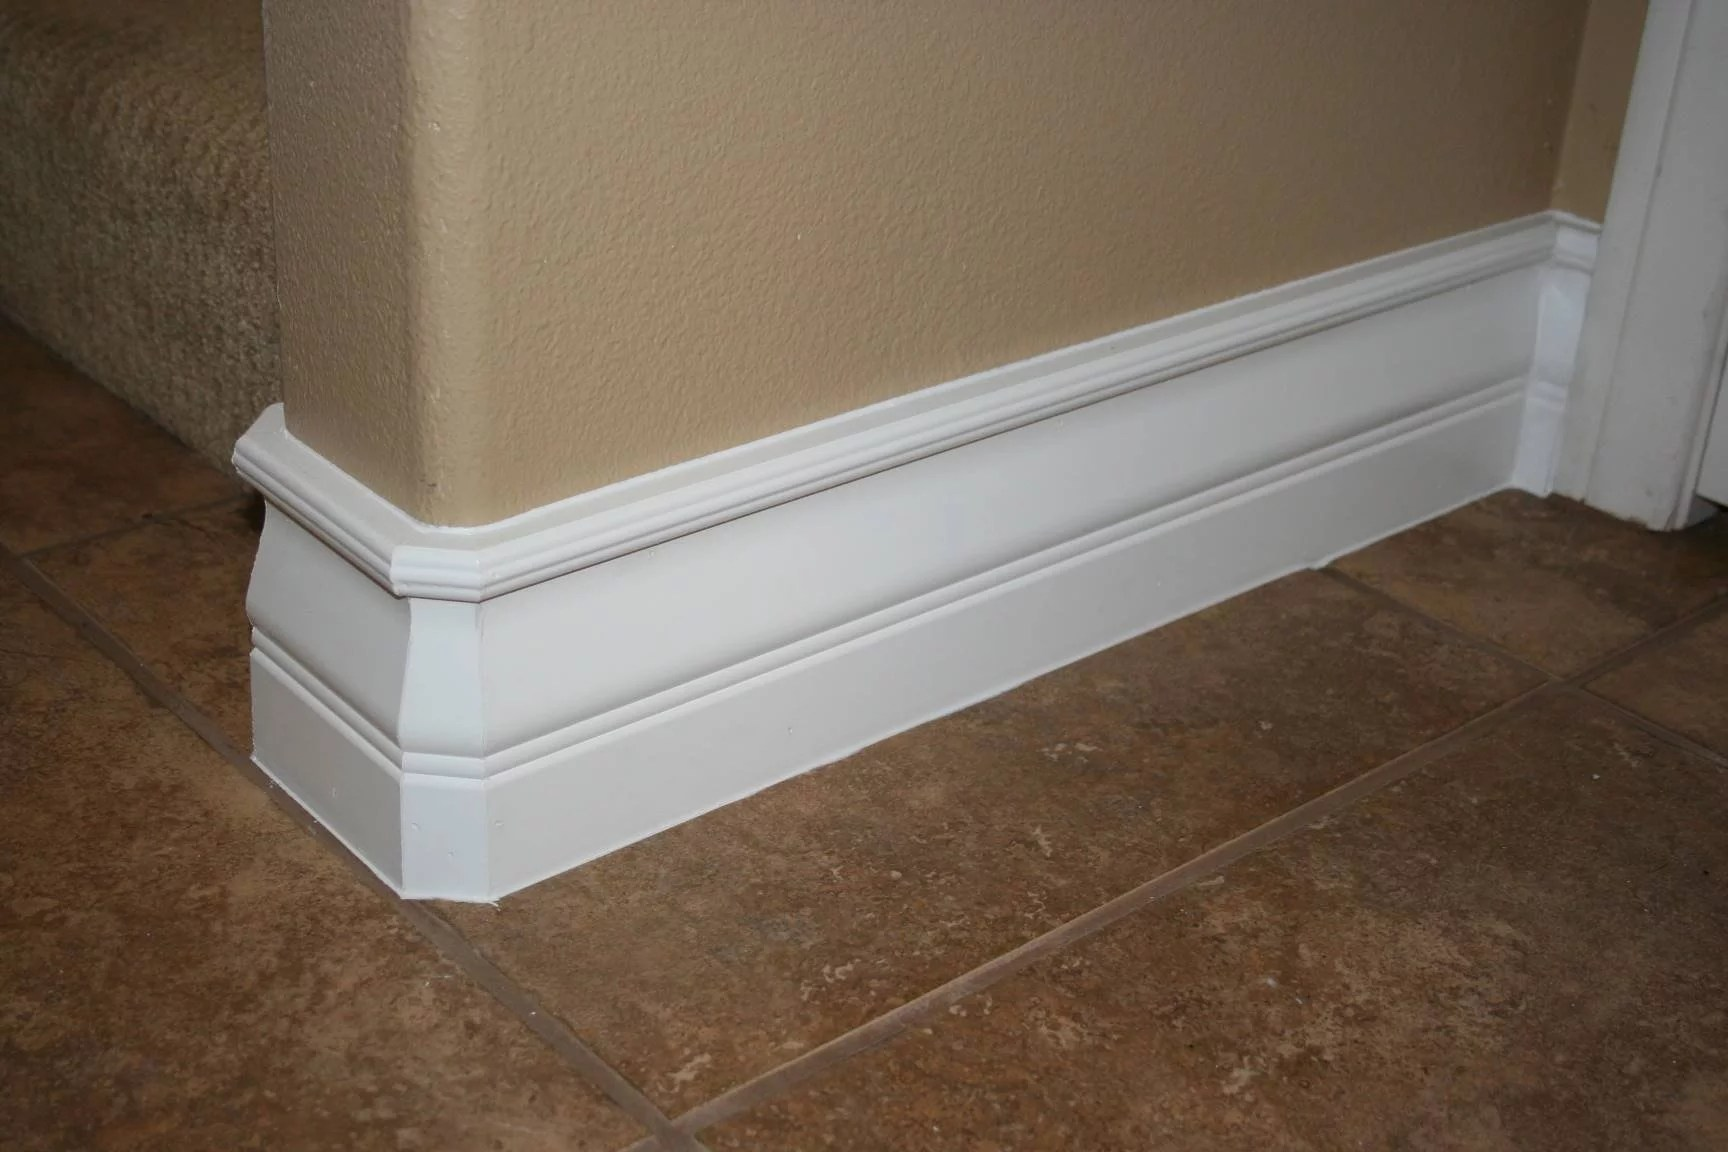 Dikke Plinten Need Custom Baseboard Installation Hire Our 1 Rated Company